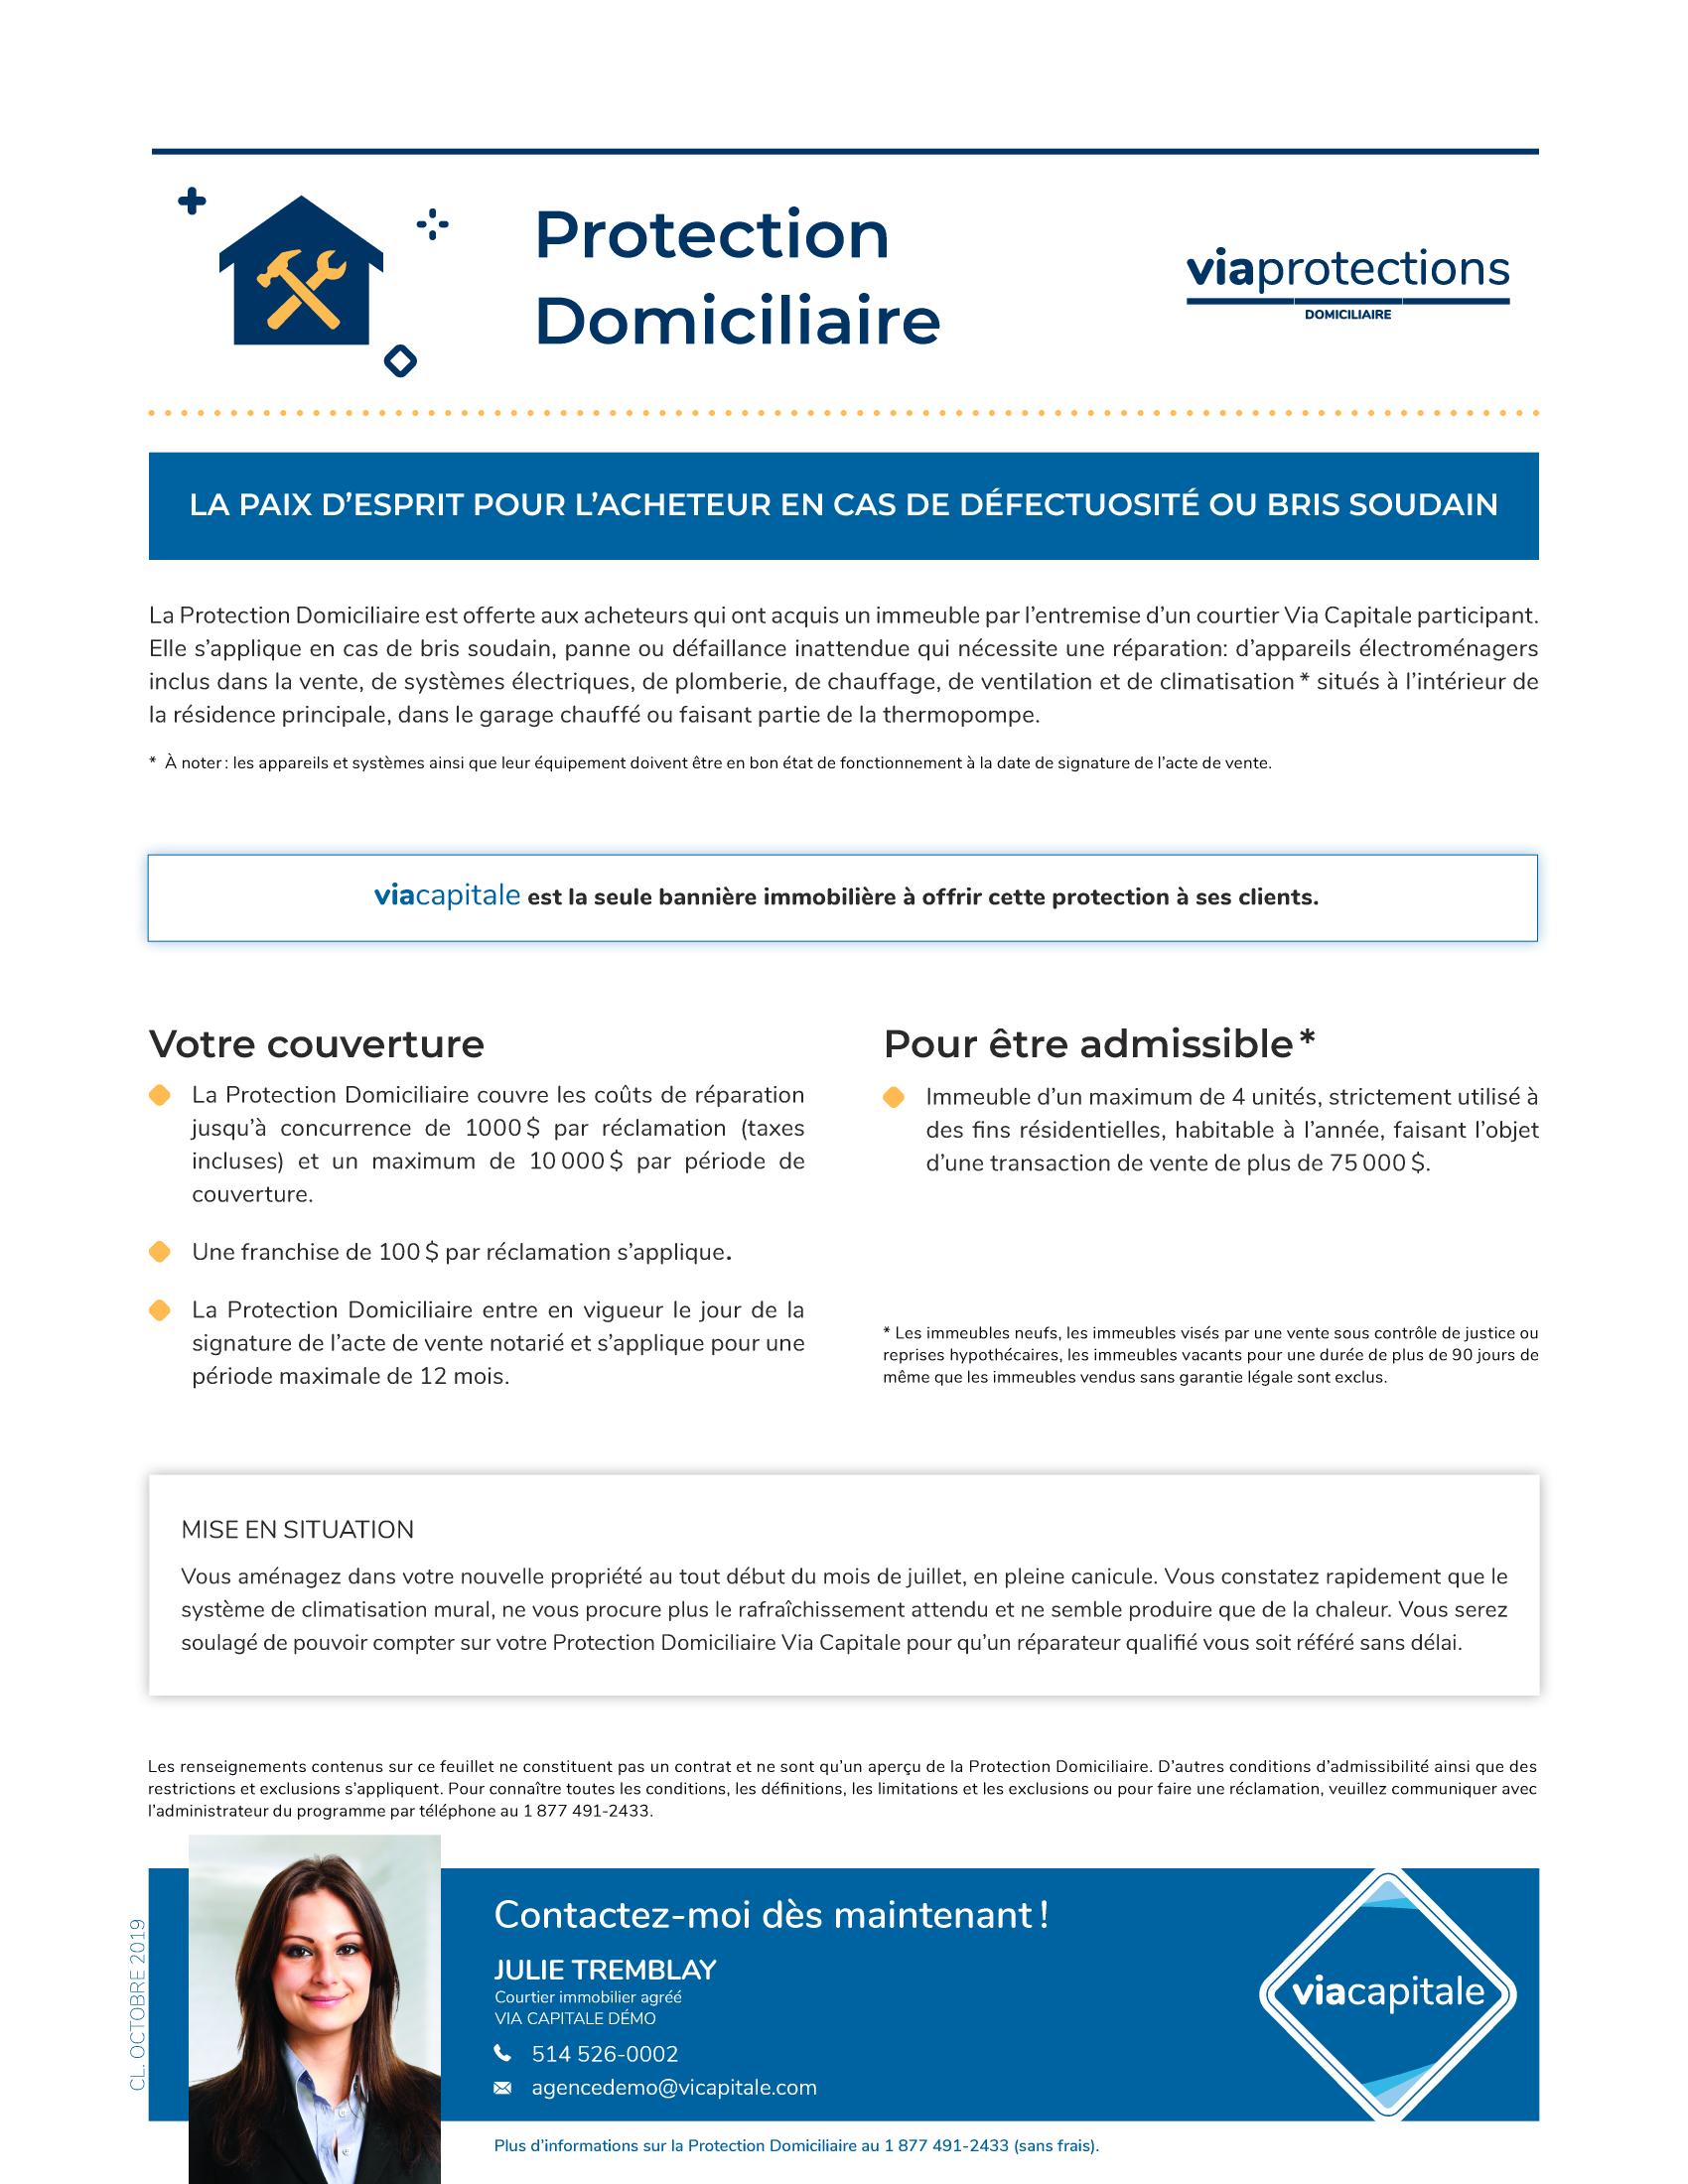 1 | Protections Domiciliaire - AVEC photo